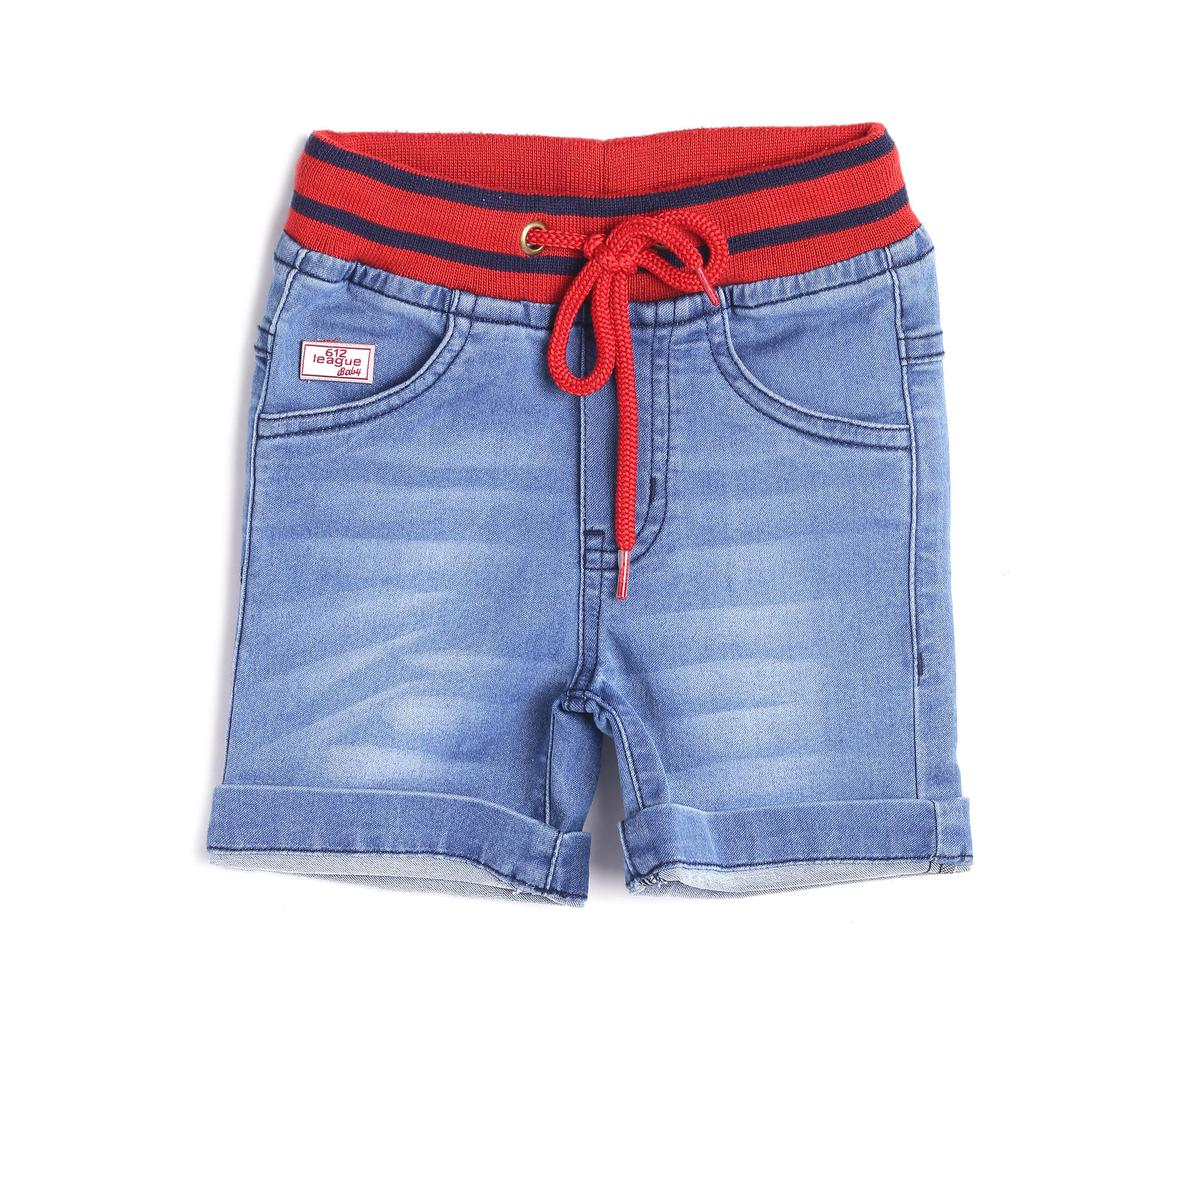 612 League - Blue Colored Red Rib Denim Shorts For Baby Boys